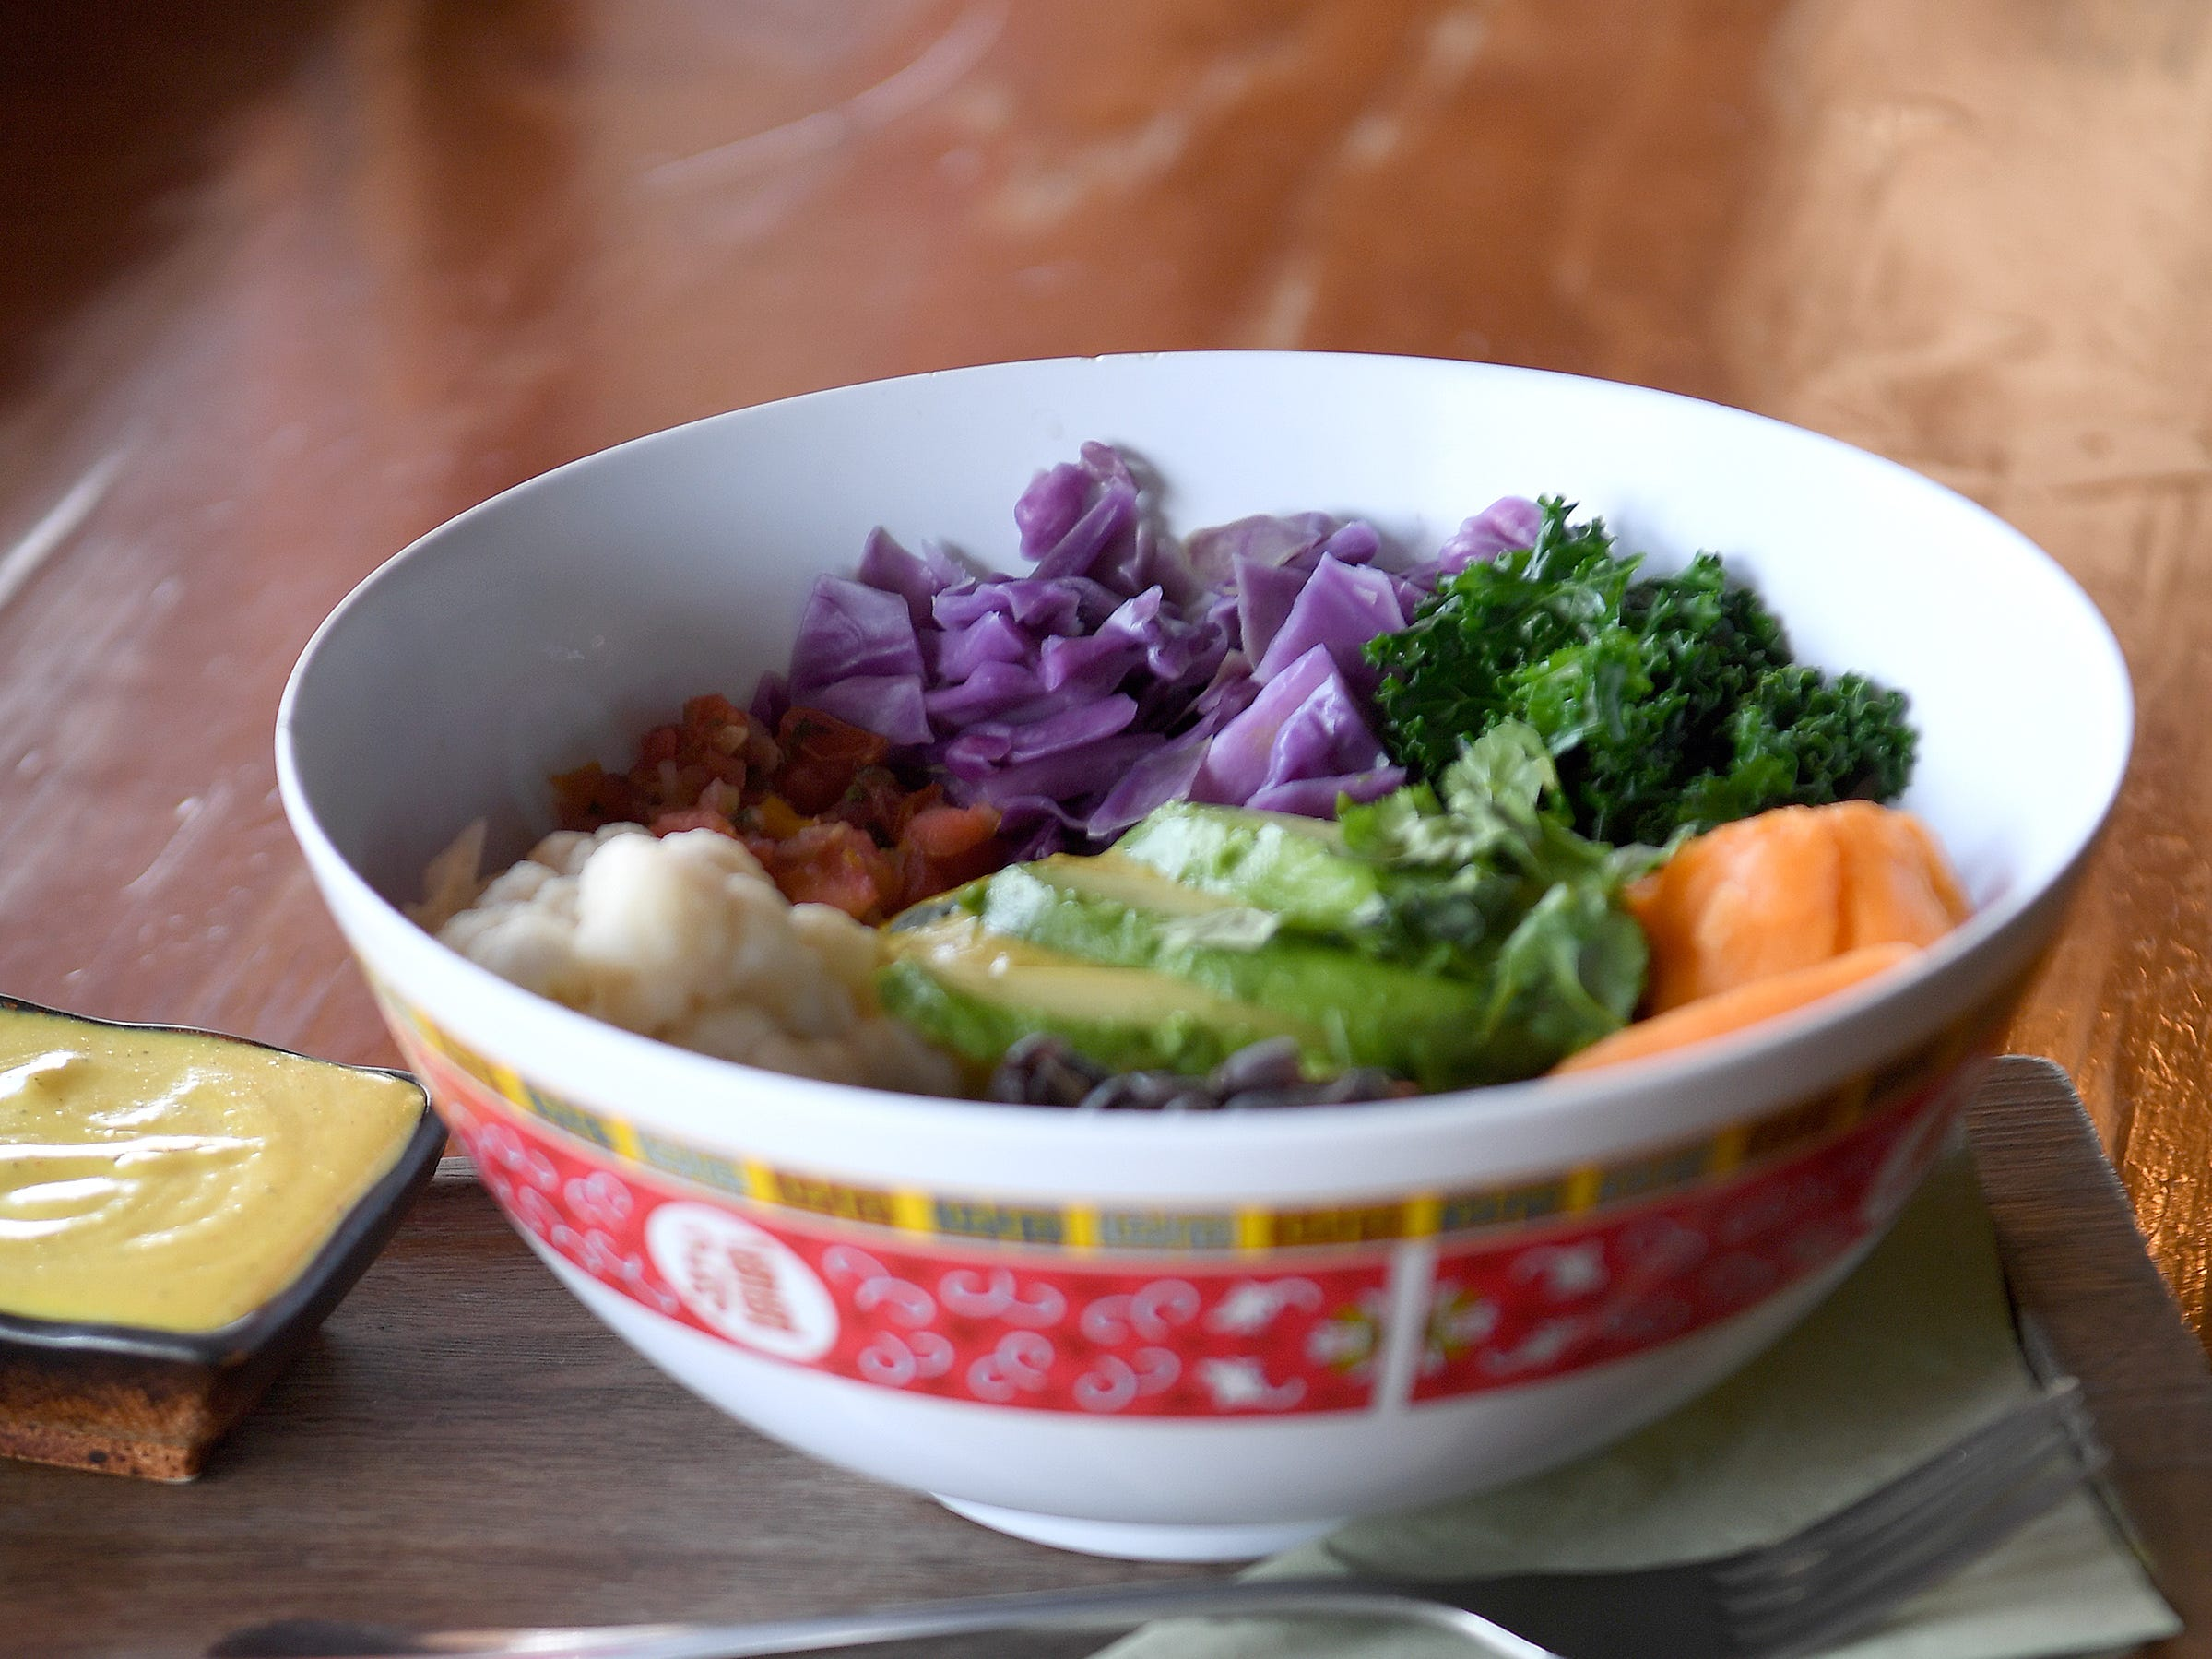 The Yum bowl at Dobra Tea's West Asheville location is jasmine rice, seasoned black beans, steamed kale, sweet potato, cauliflower, red cabbage, avocado and salsa all paired with a signature Yum sauce.